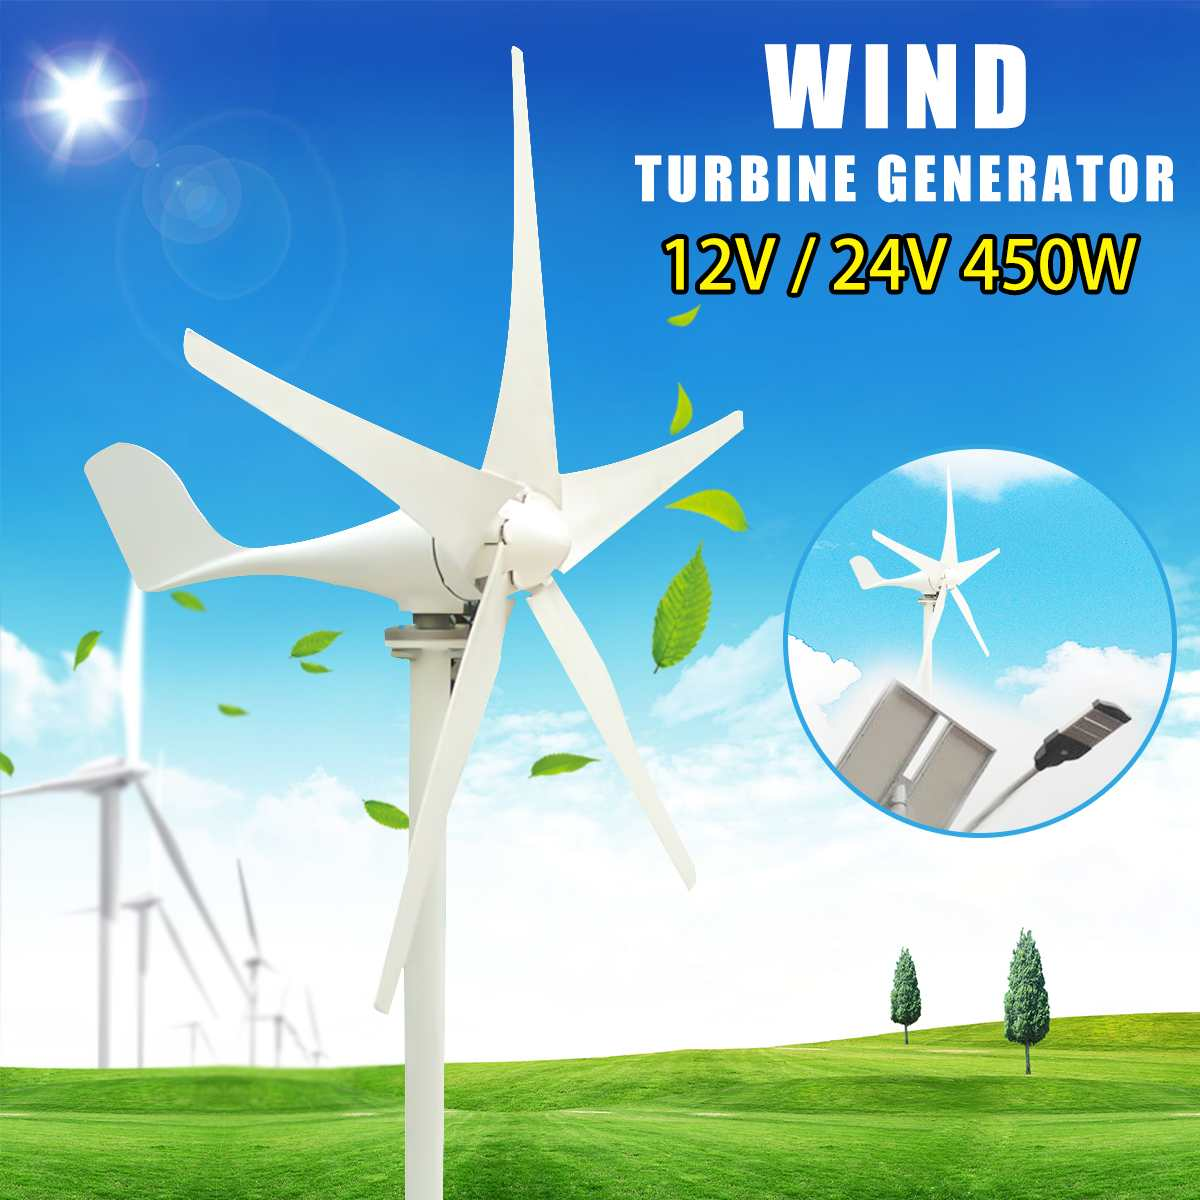 Wind Generator 450W 12/24V Wind Turbines Generator 5 Blades Windmill Miniature for Home Camping with ControllerWind Generator 450W 12/24V Wind Turbines Generator 5 Blades Windmill Miniature for Home Camping with Controller